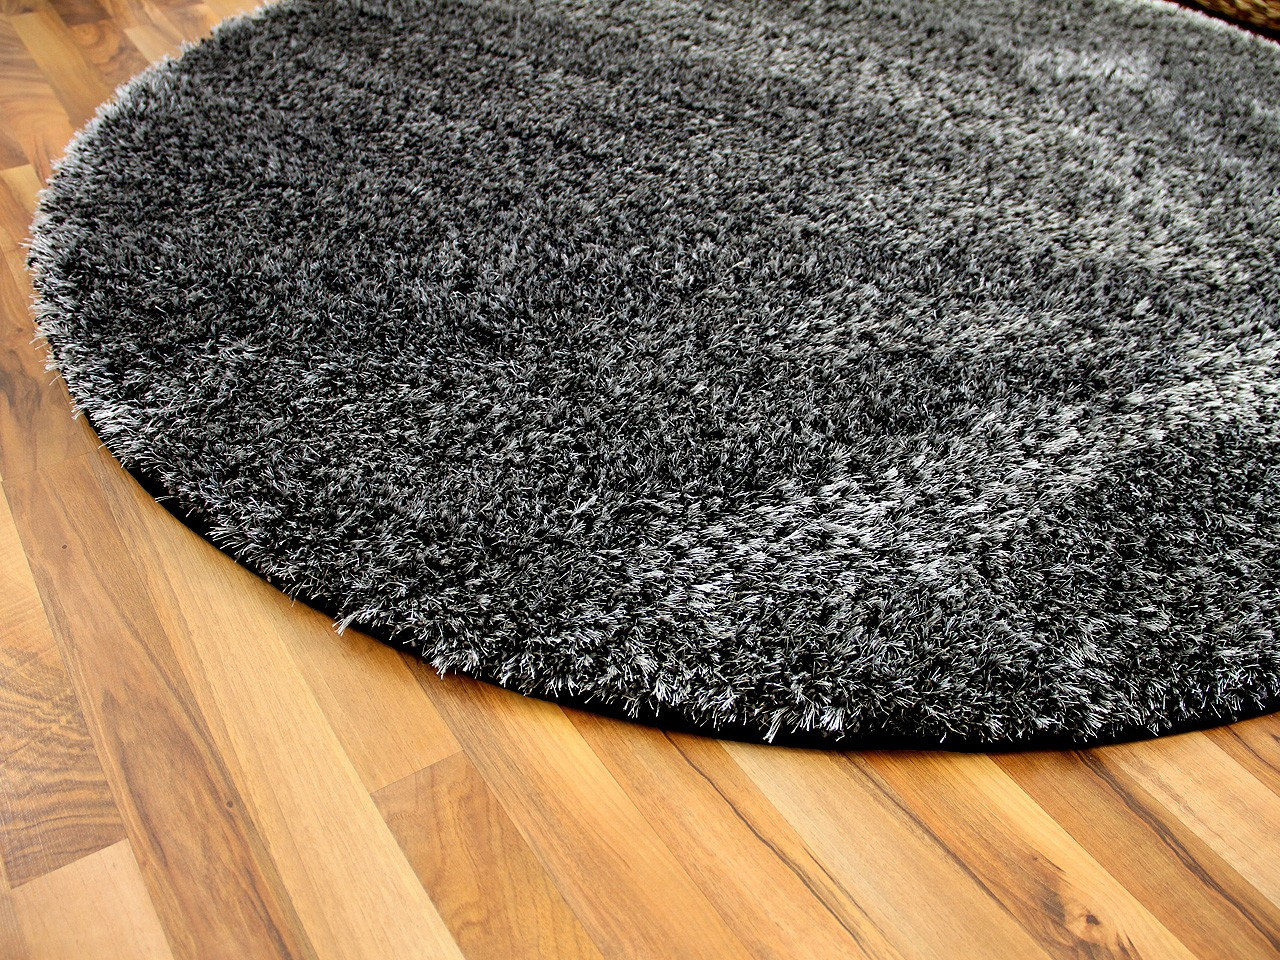 Hochflor Shaggy Teppich Luxus Feeling Mix Anthrazit Rund In 7 Grossen